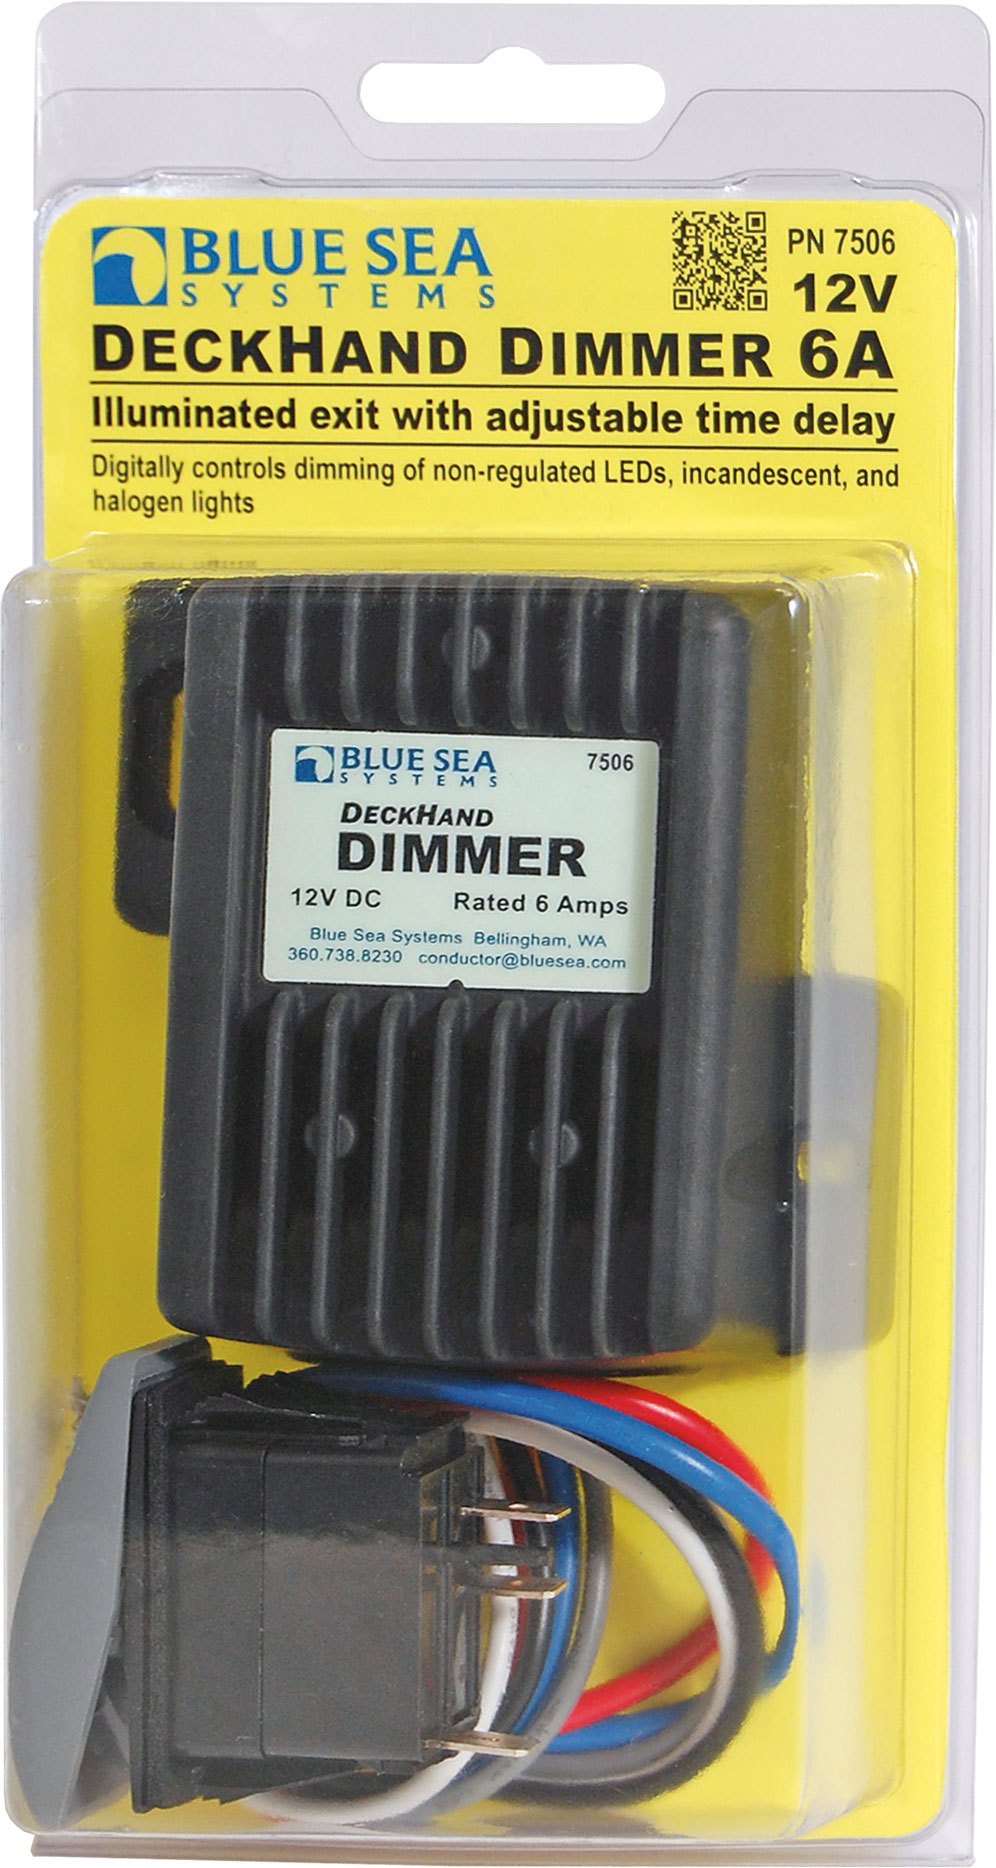 Pleasant Deckhand Dimmer 12V Dc 25A Blue Sea Systems Wiring Digital Resources Instshebarightsorg